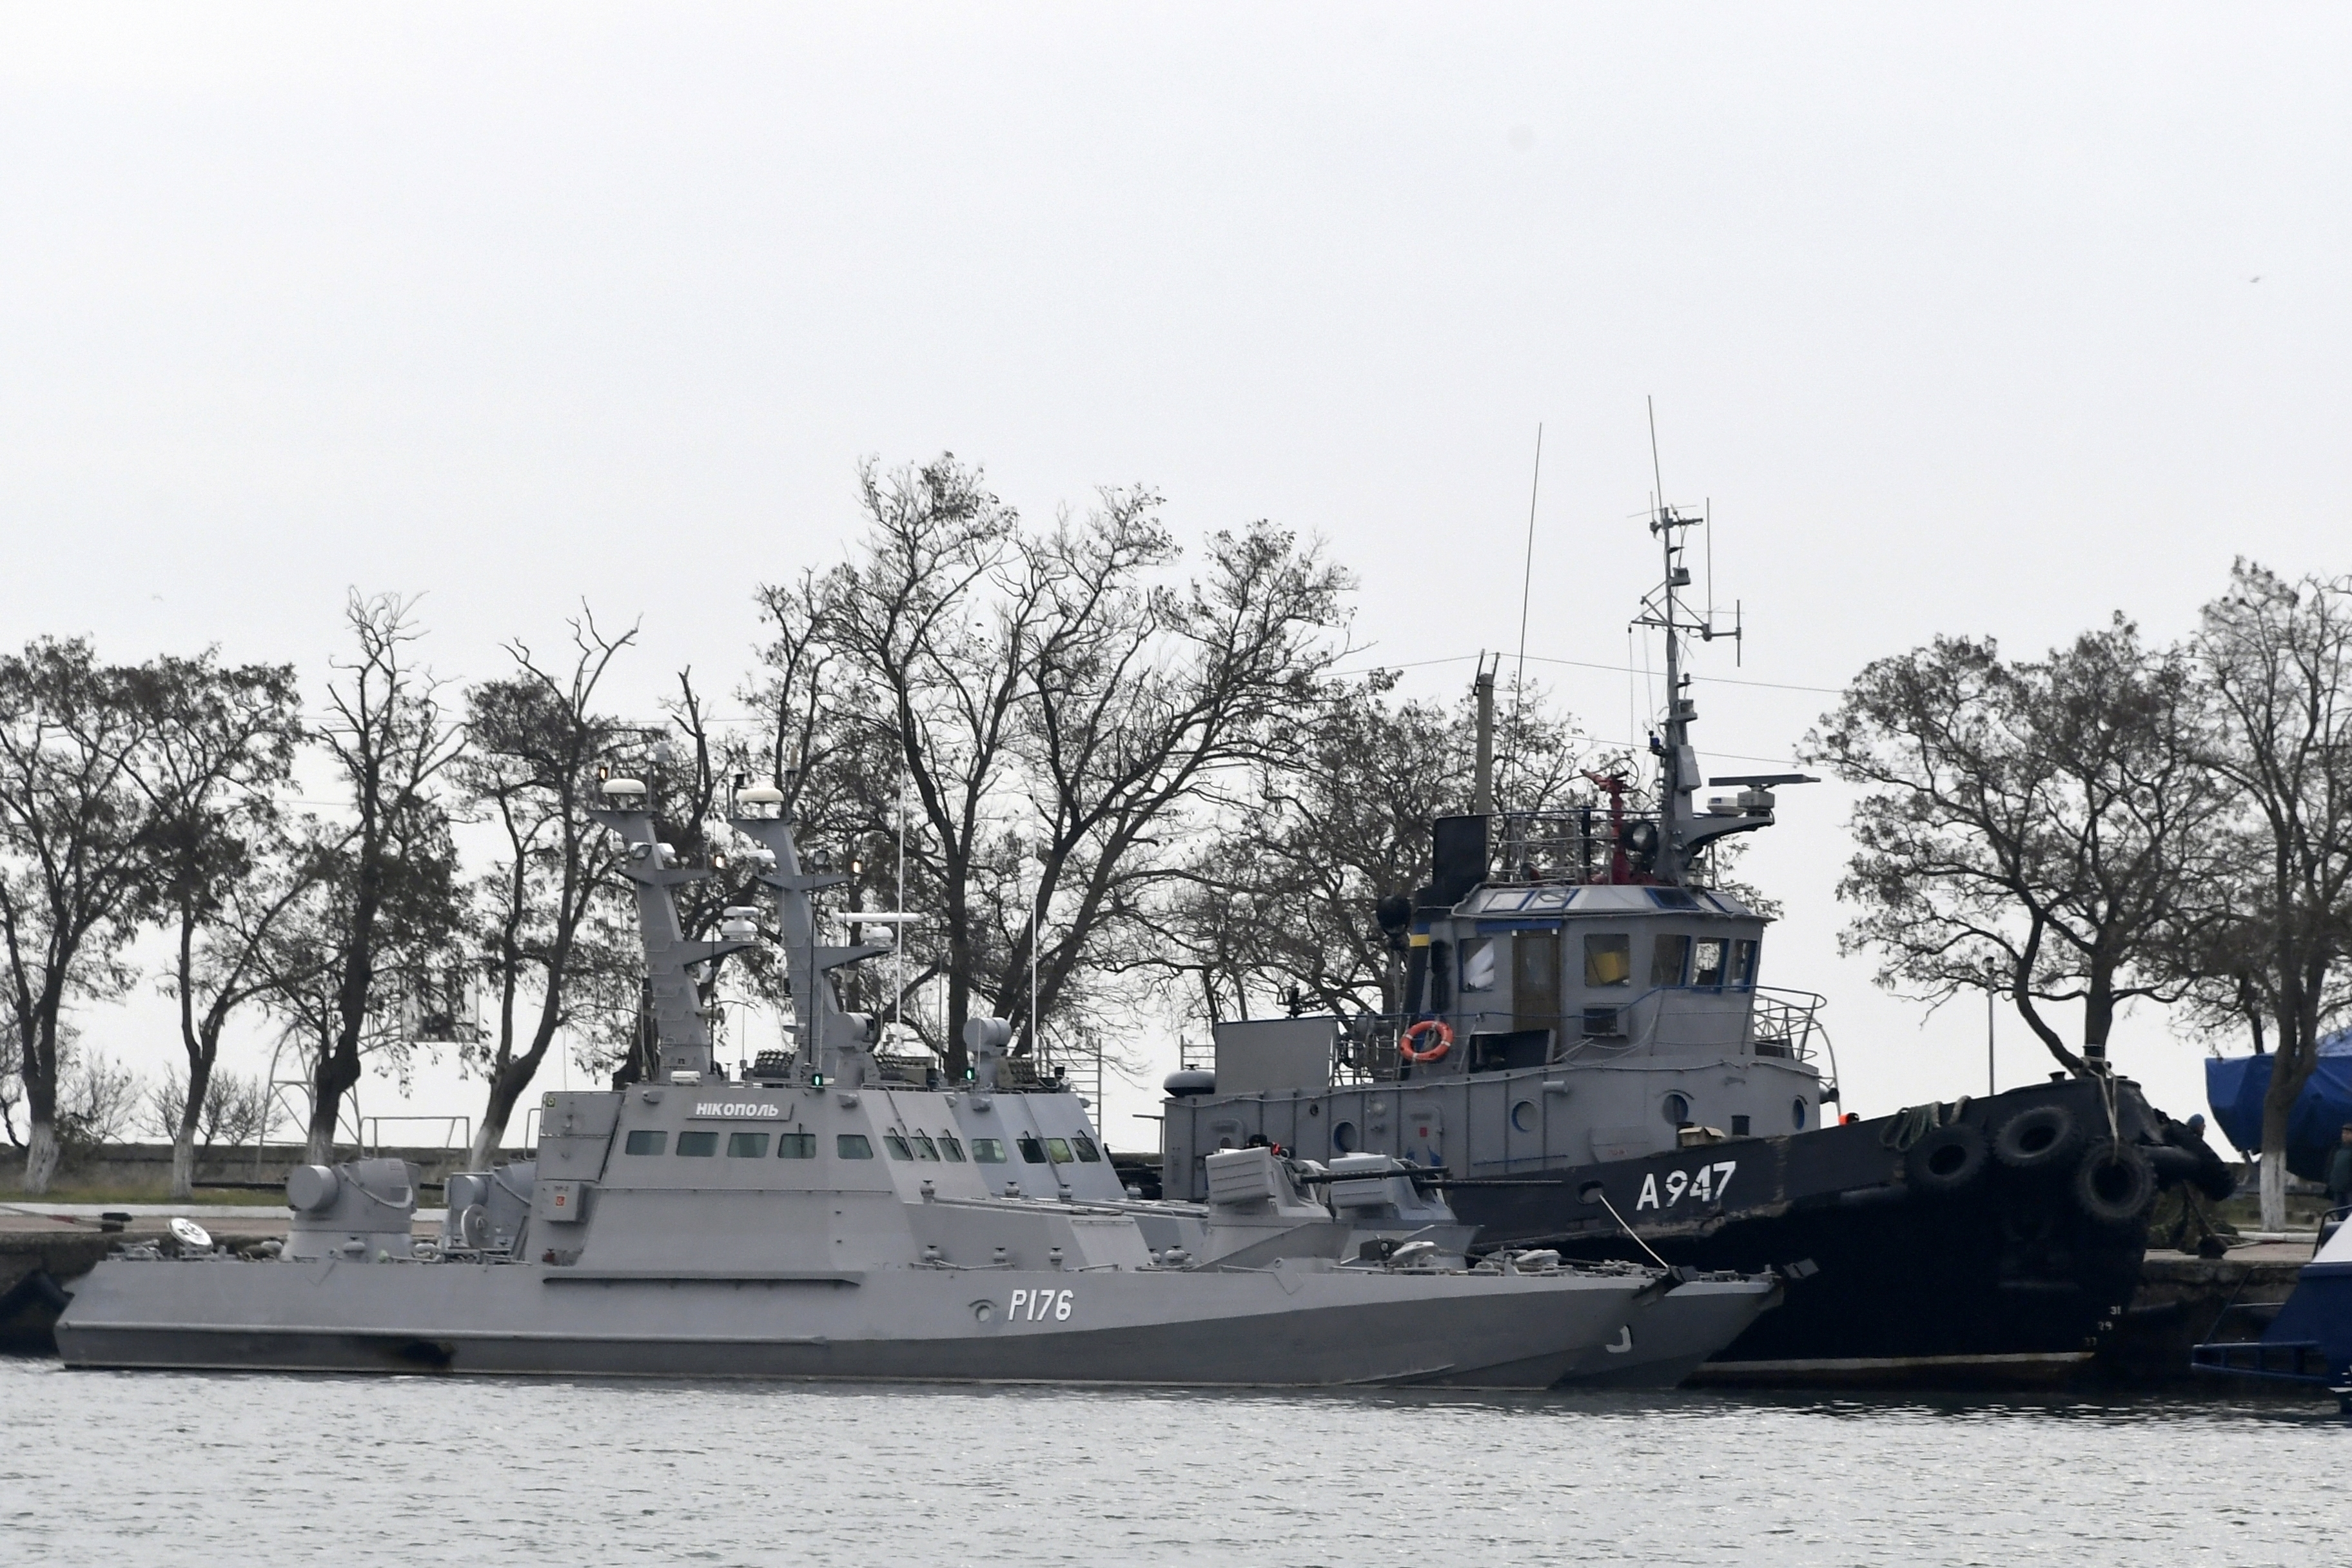 UN tribunal orders Moscow to release Ukrainian sailors, ships